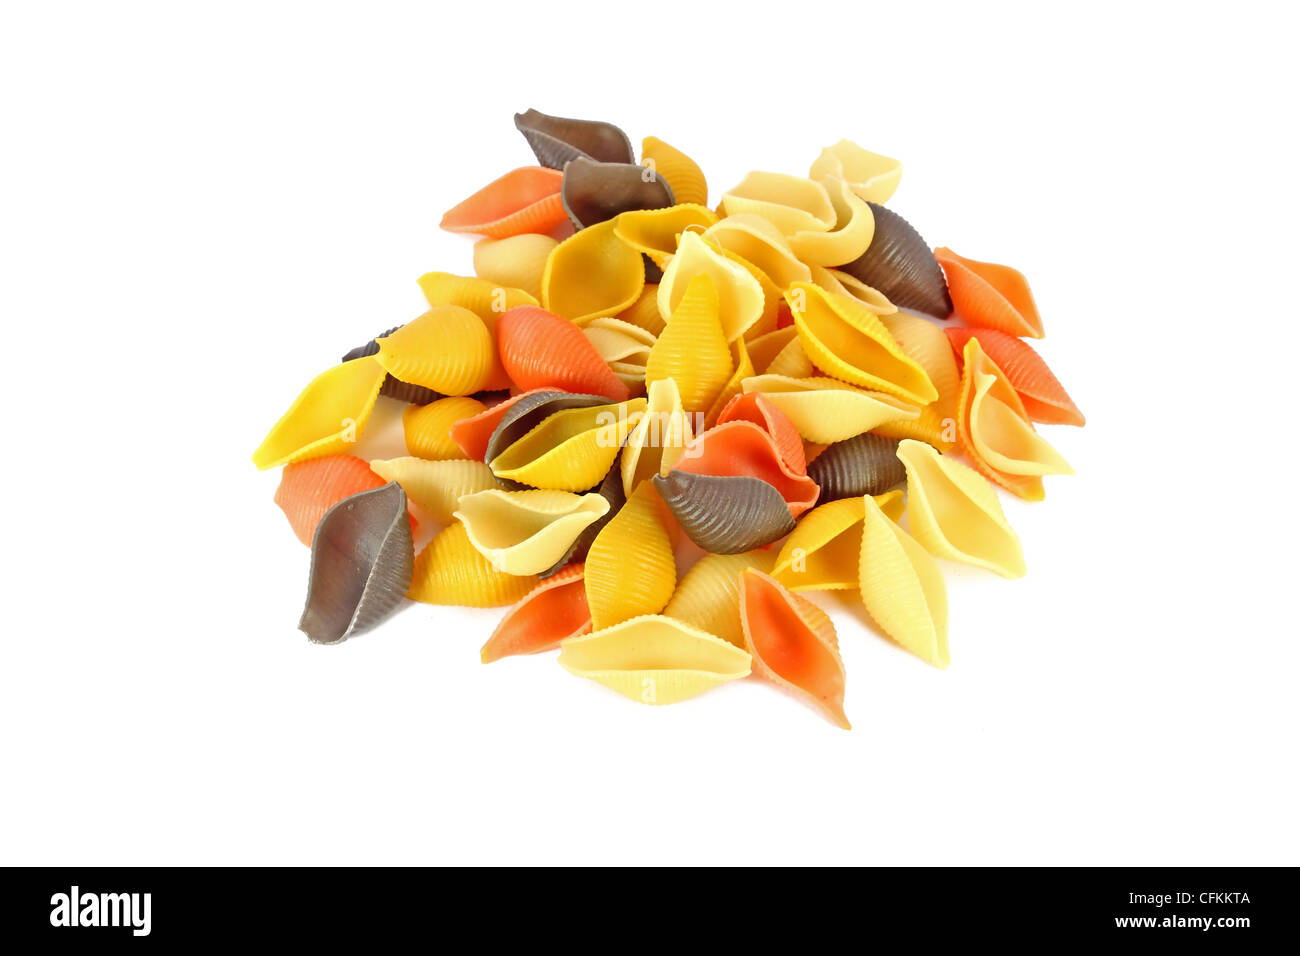 Heap of raw colored pasta shells isolated on white - Stock Image